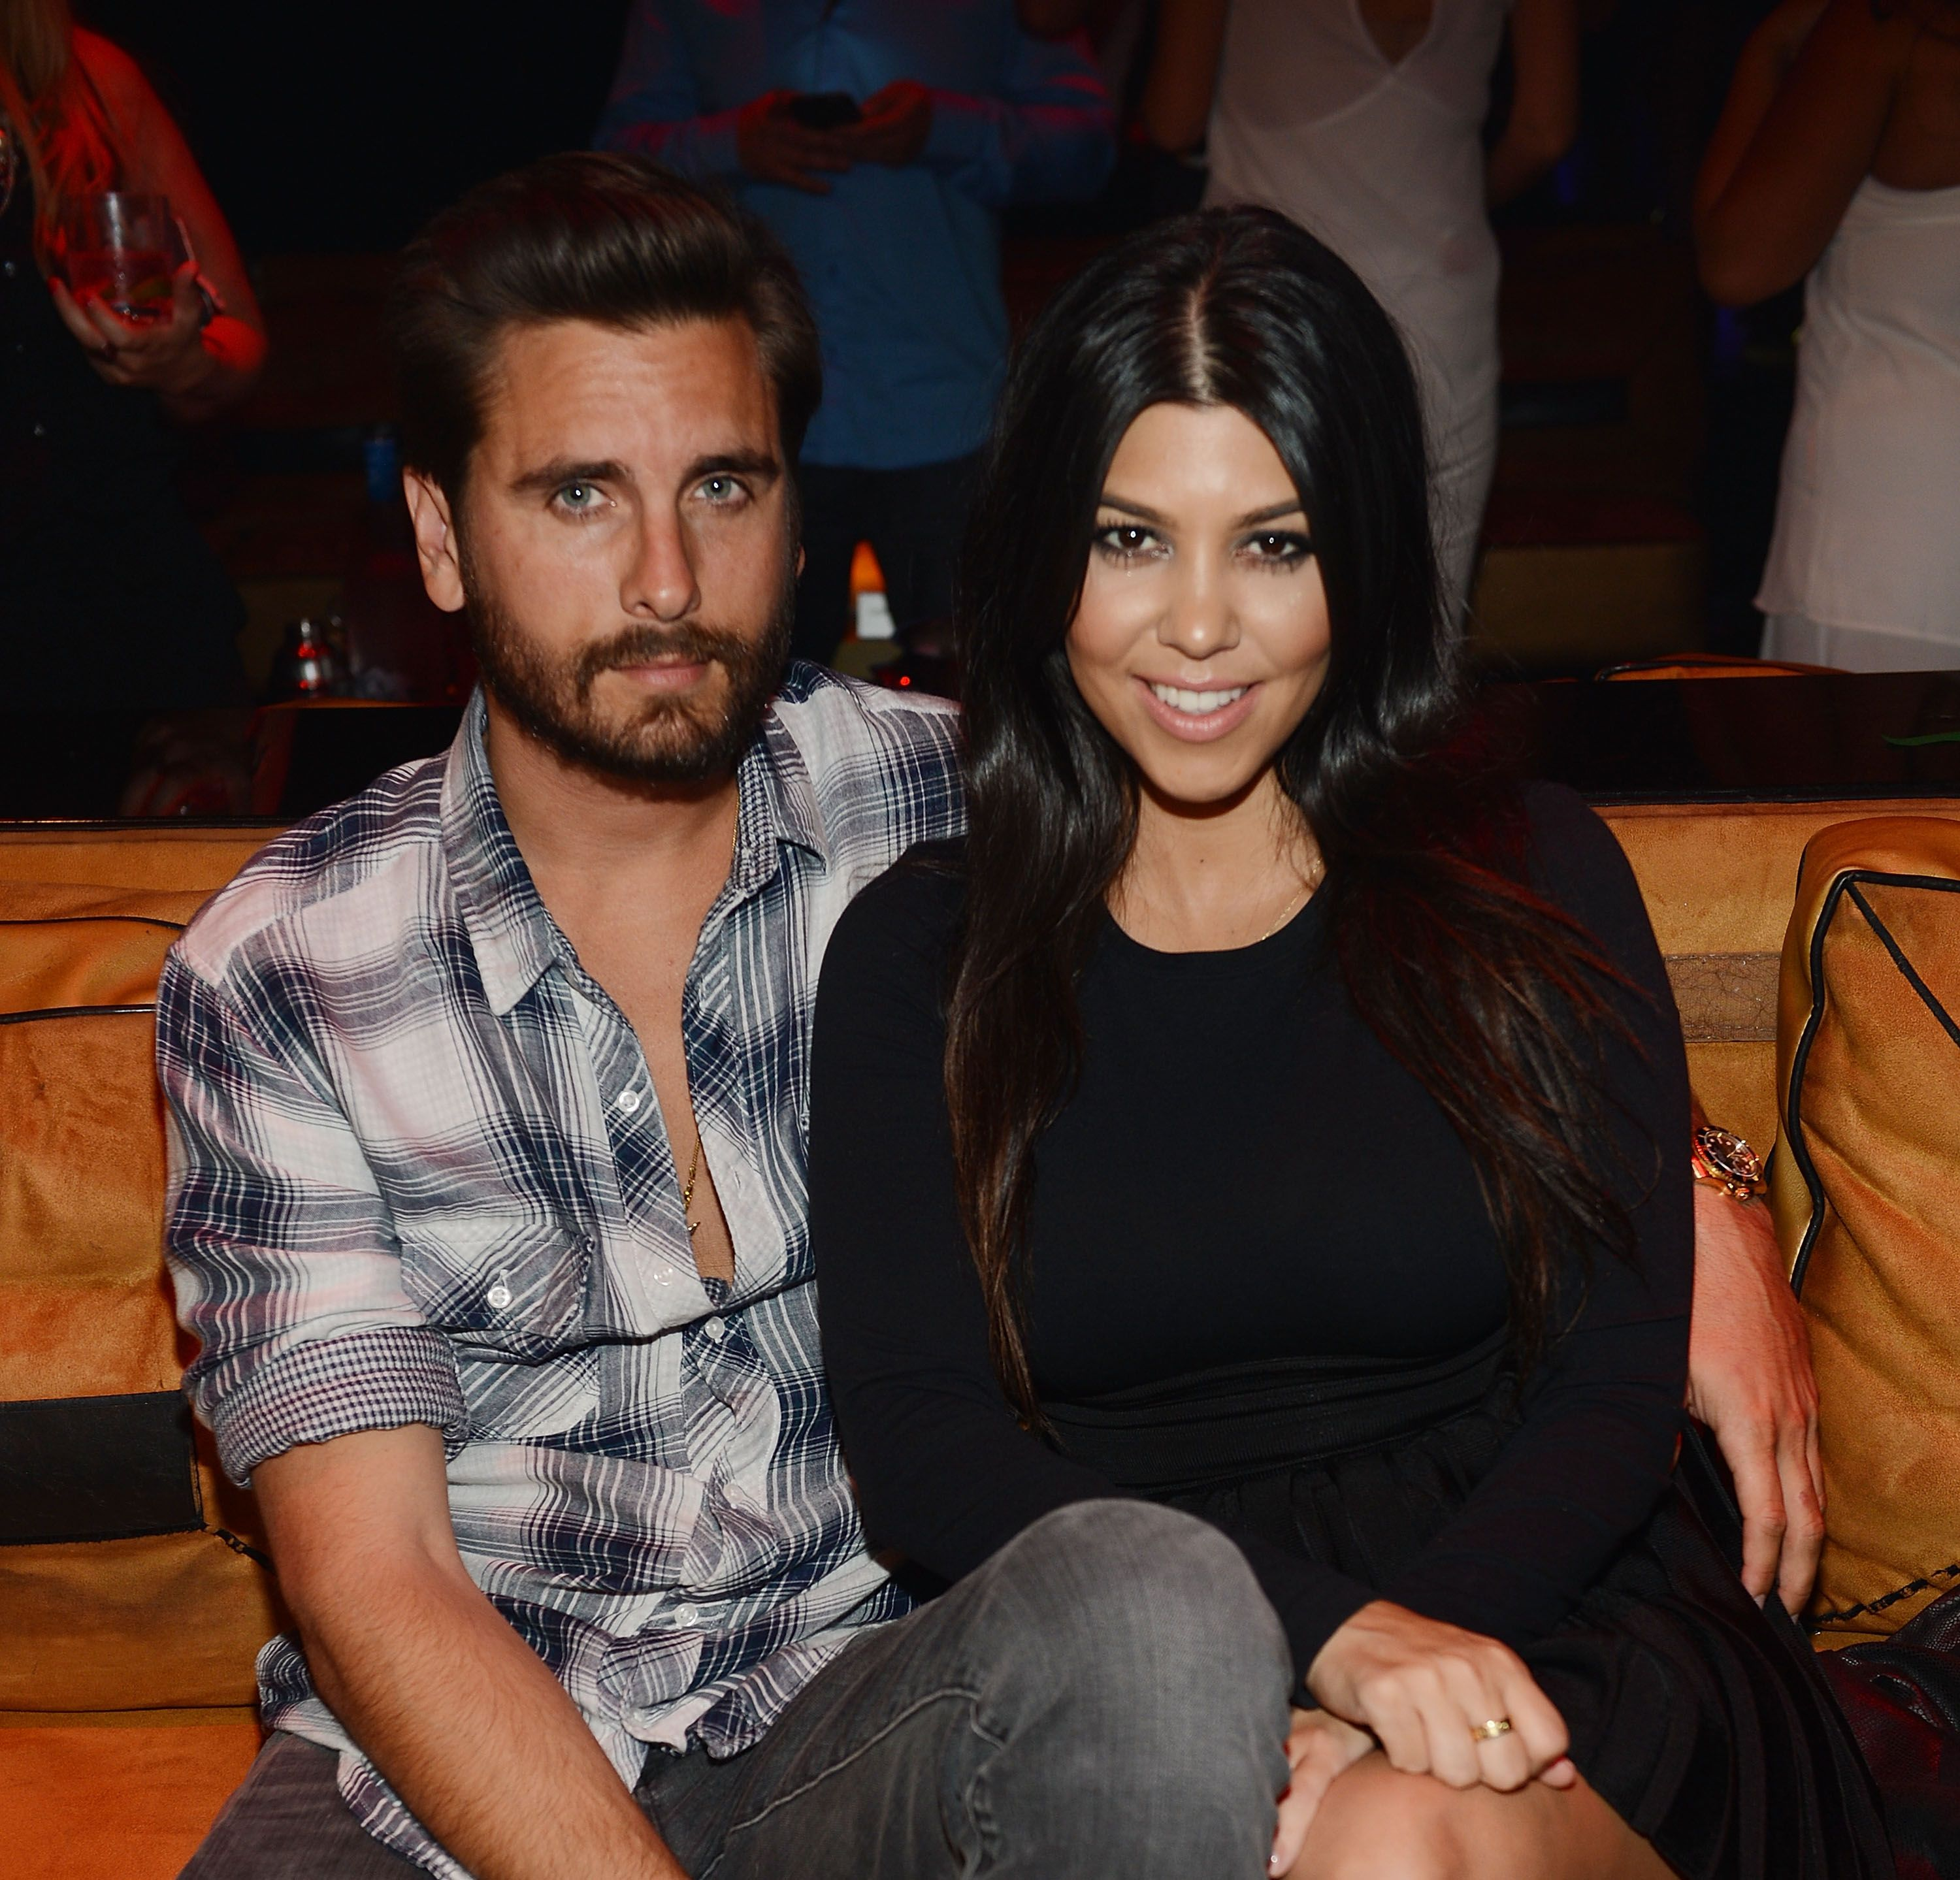 Kourtney and scott first started hookup